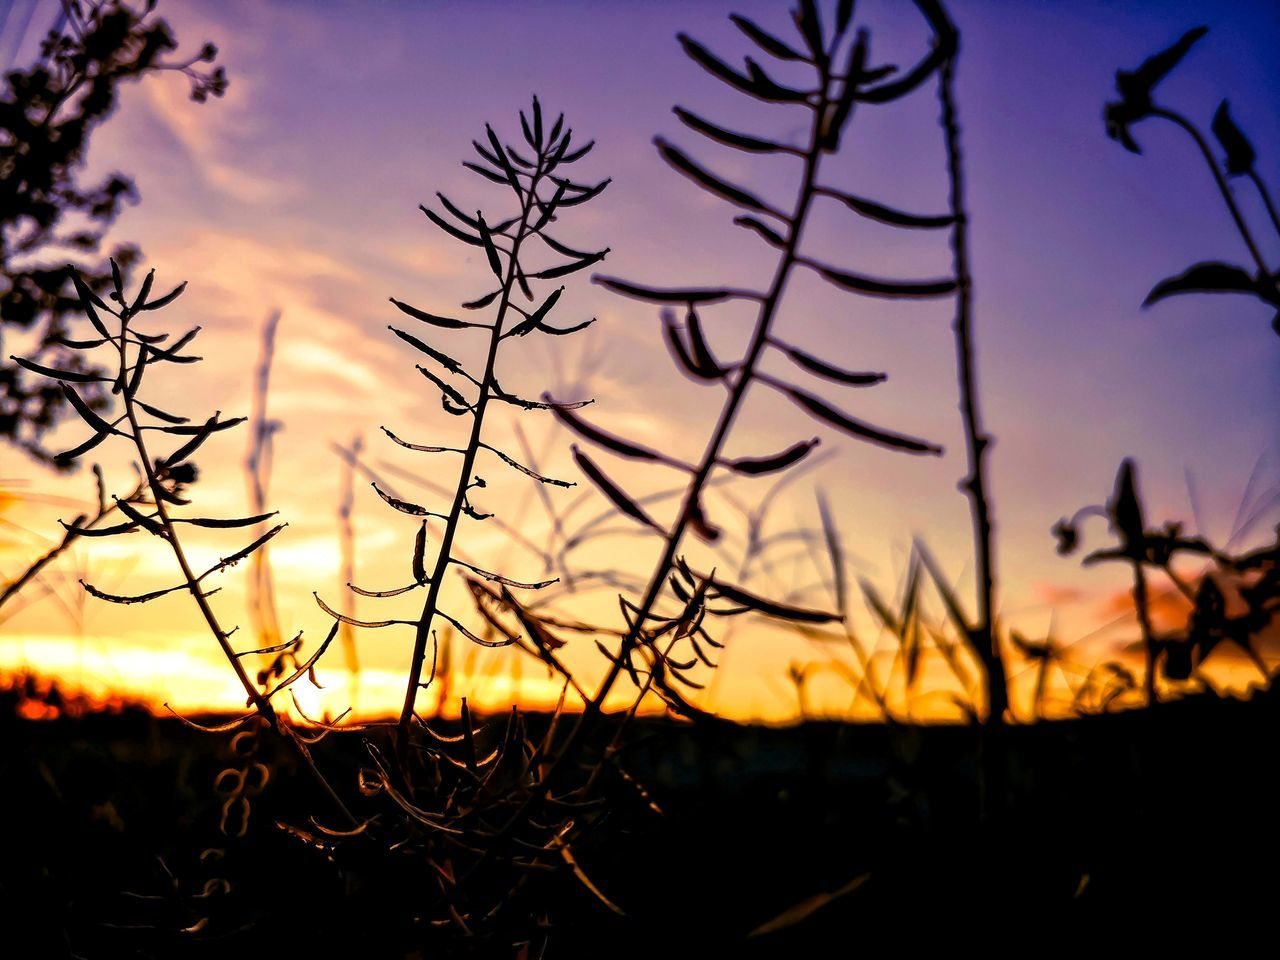 Sunset Nature Sky Beauty In Nature Plant Tranquility Silhouette Tranquil Scene No People Outdoors Growth Scenics Landscape Close-up Day Hues Dusk Sky Sunset Colors EyeEmNewHere